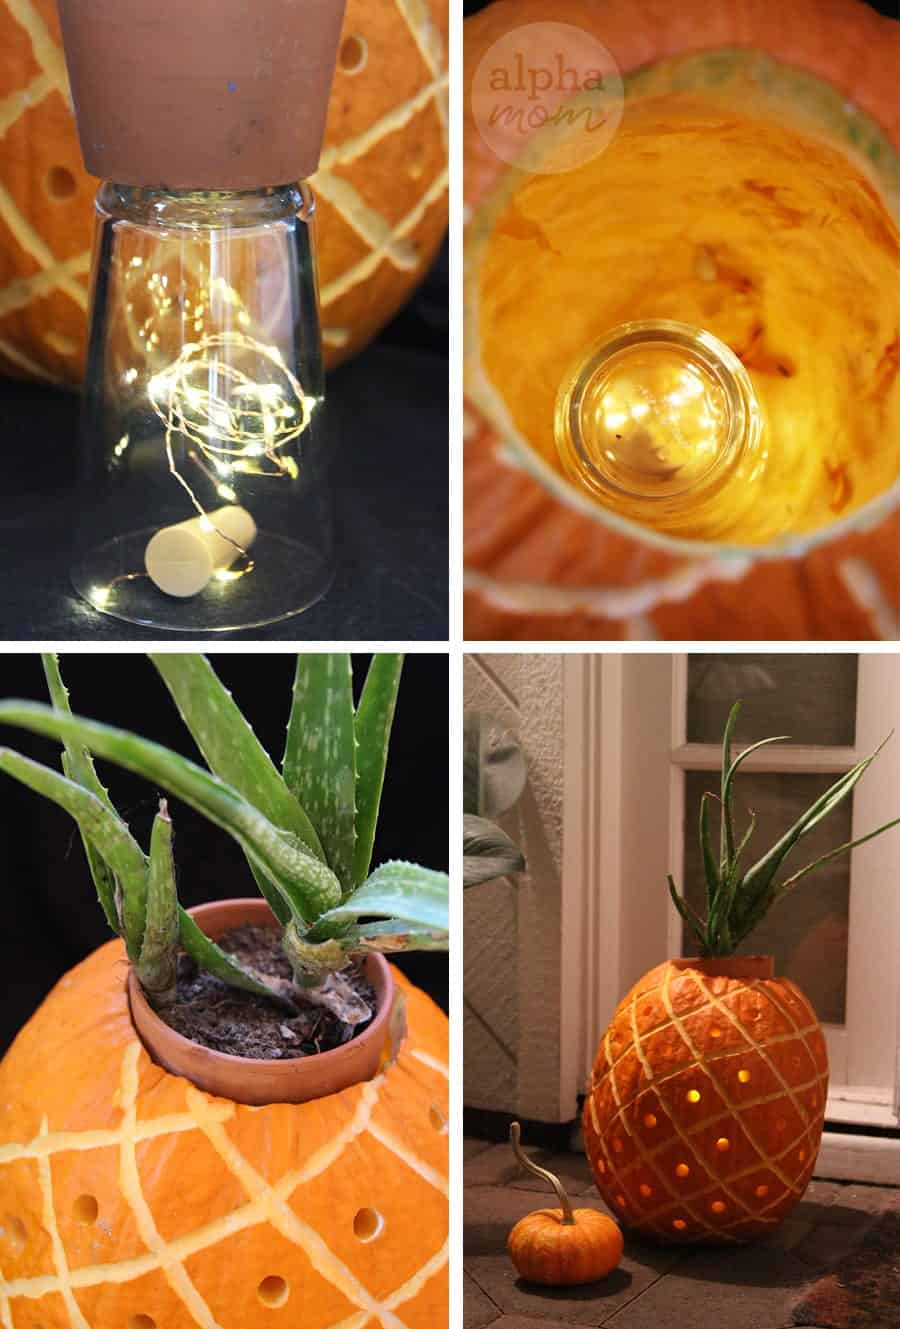 3D Pineapple Jack o' Lantern Carving Tutorial (add lights) by Brenda Ponnay for Alphamom.com